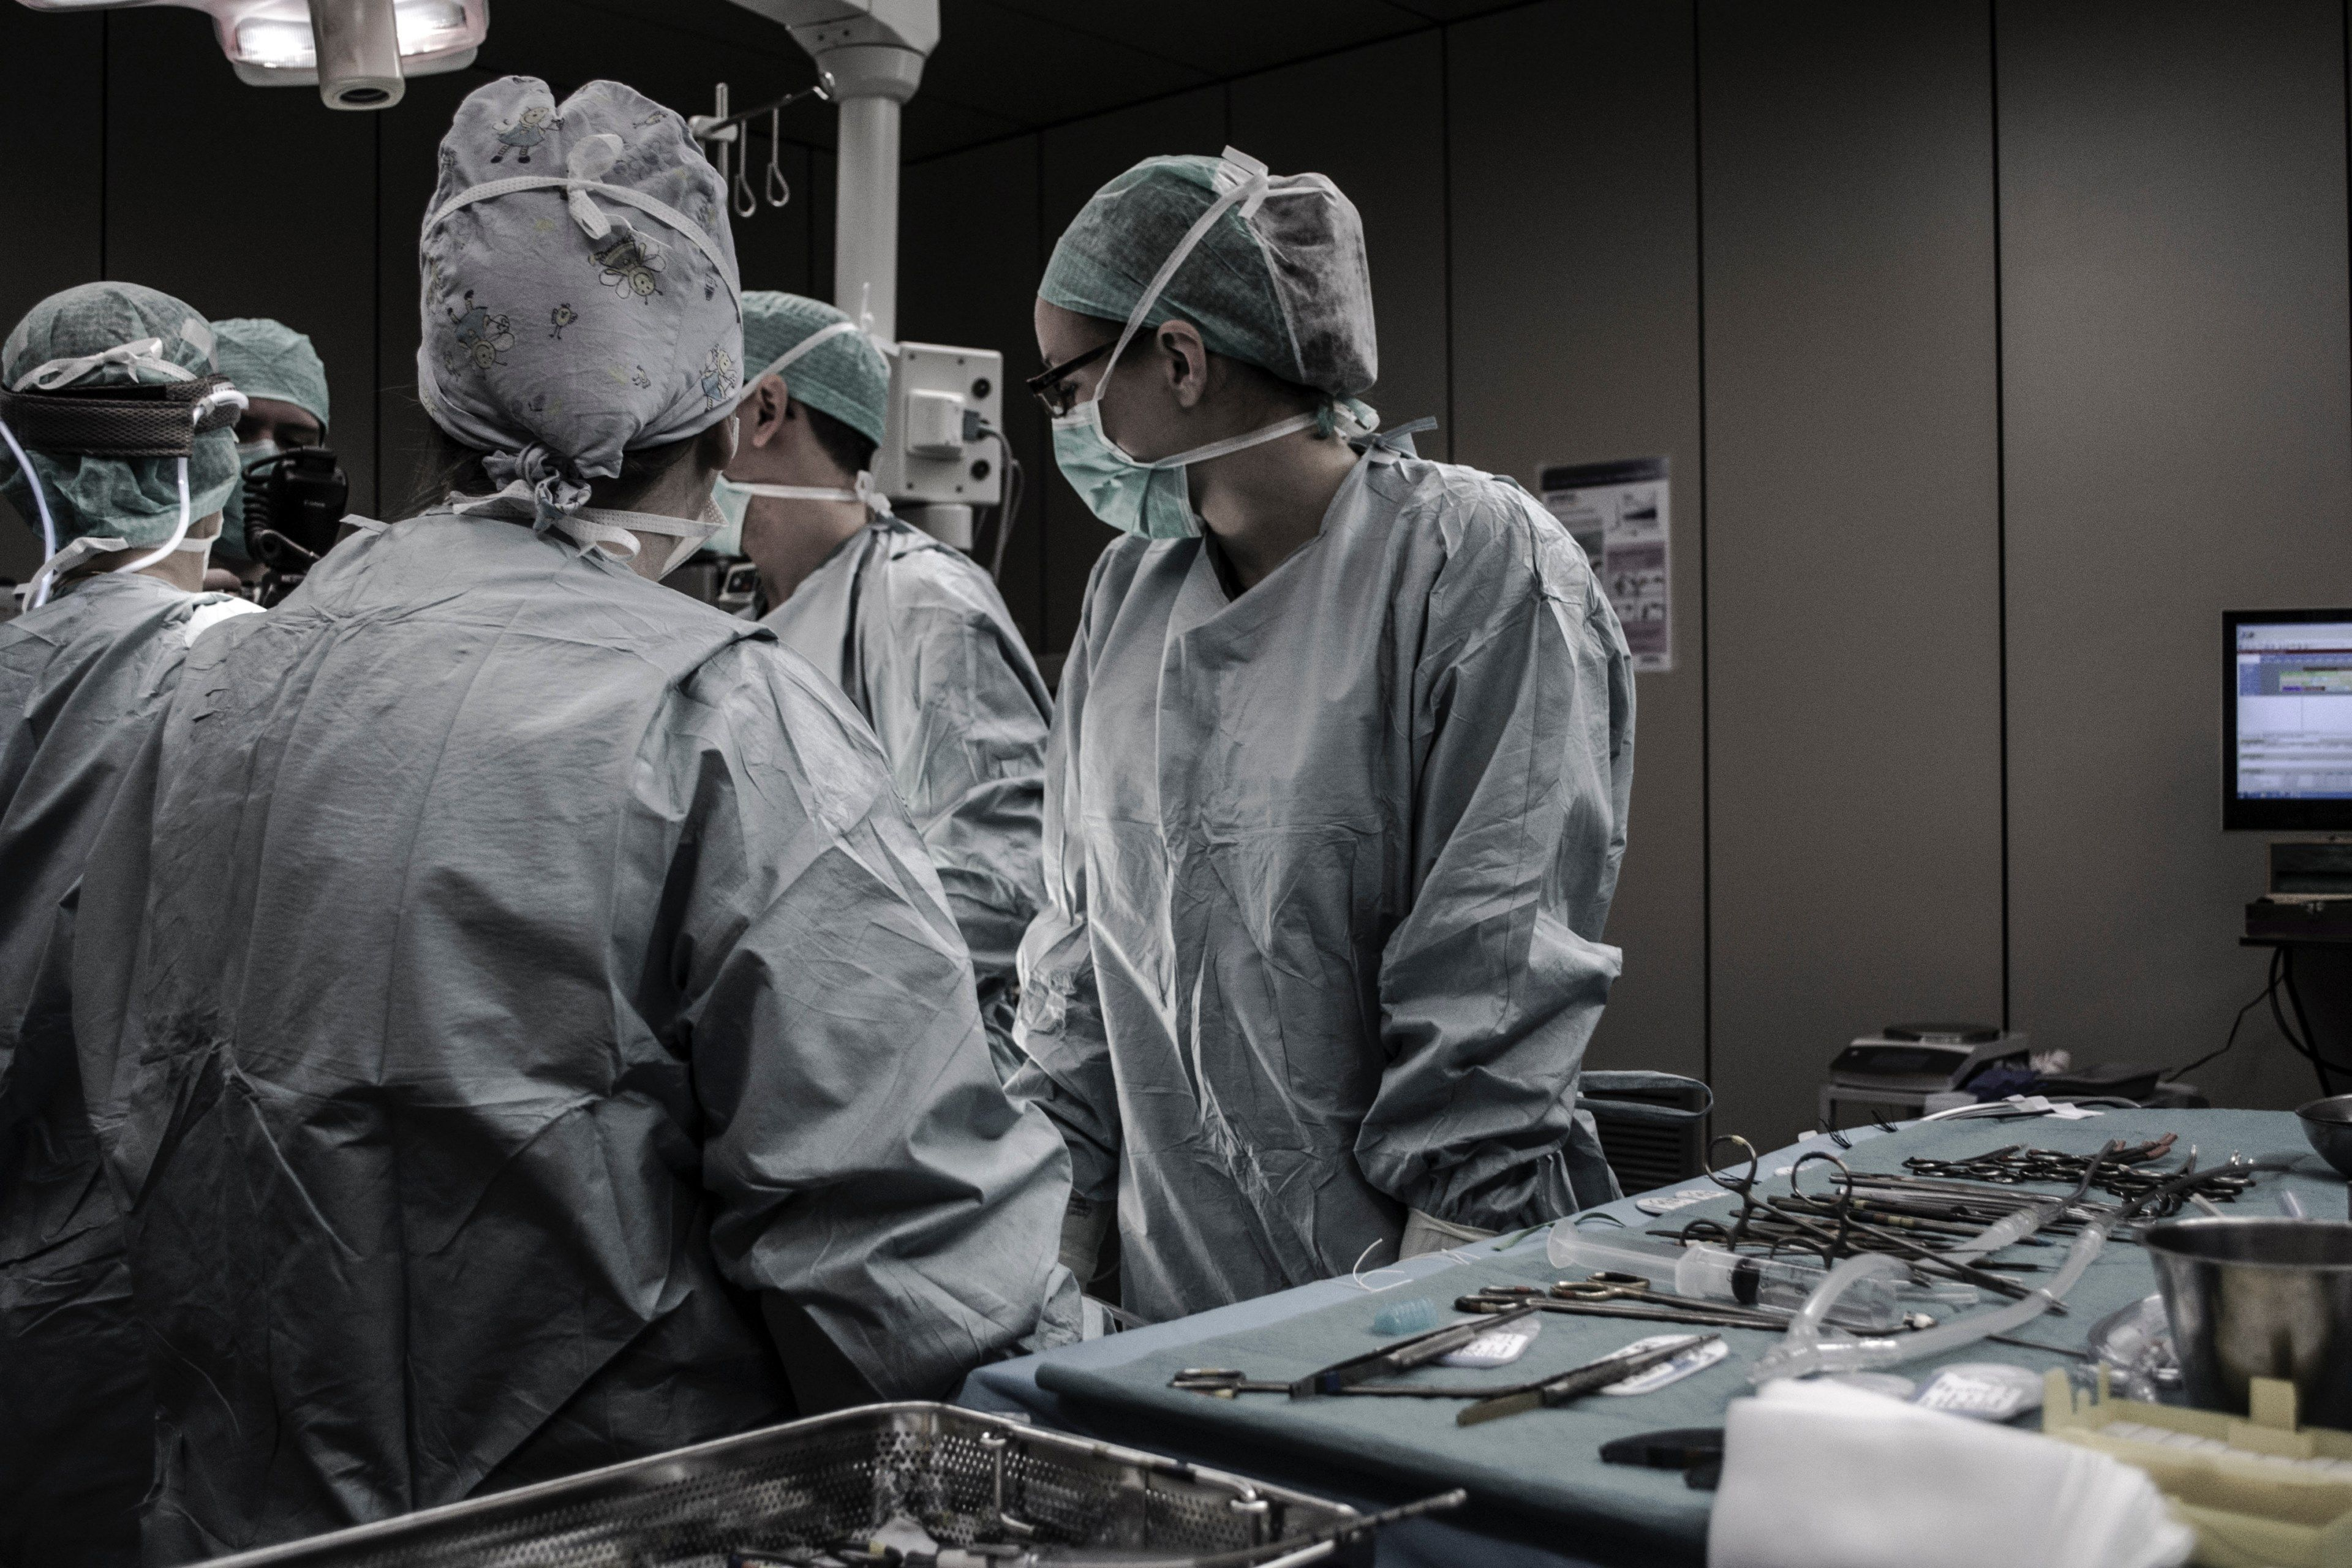 3840x2560 surgery hospital medical and doctor hd 4k wallpaper and background